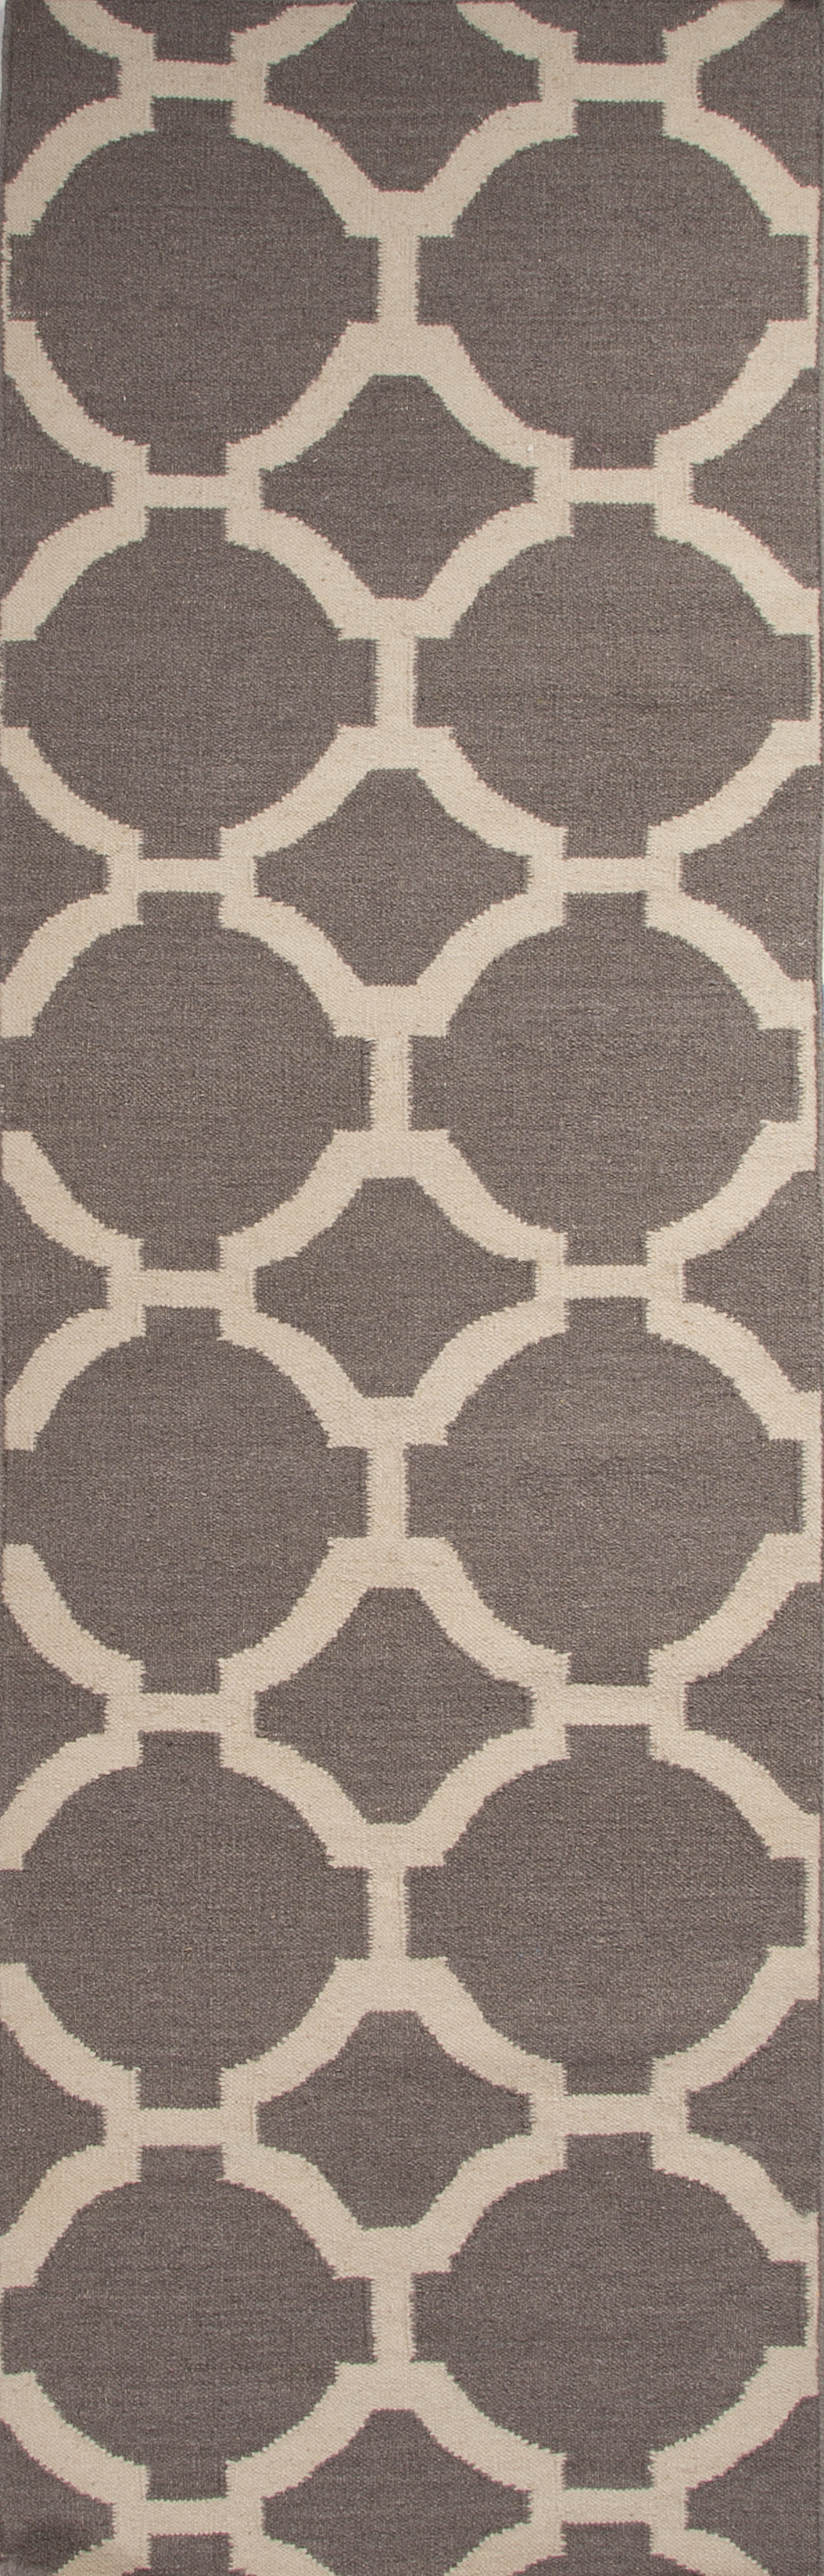 Maroc 2.6 x 8 Rug by JAIPUR Rugs at Malouf Furniture Co.